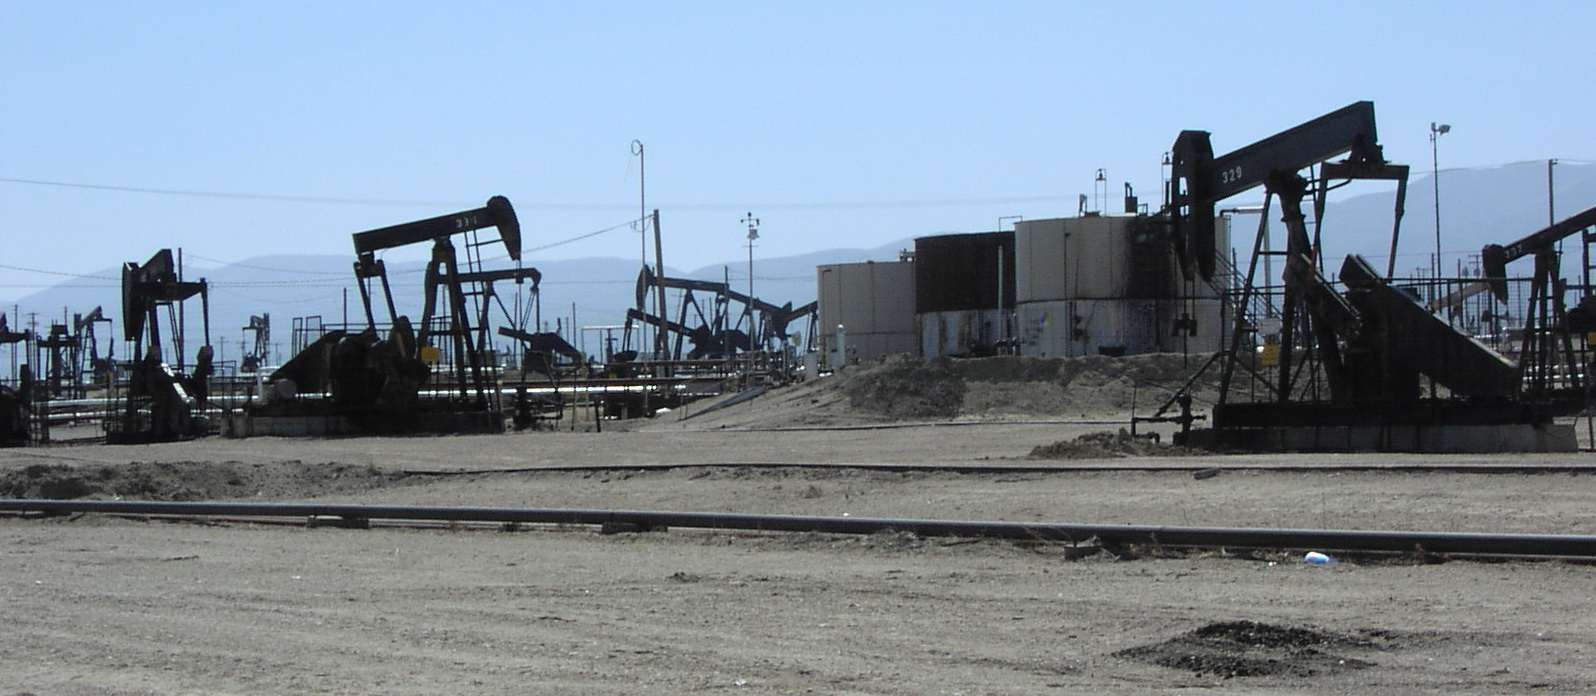 Lawmaker Introduces Bill To Clean Up 3.2 Million Abandoned Oil and Gas Wells